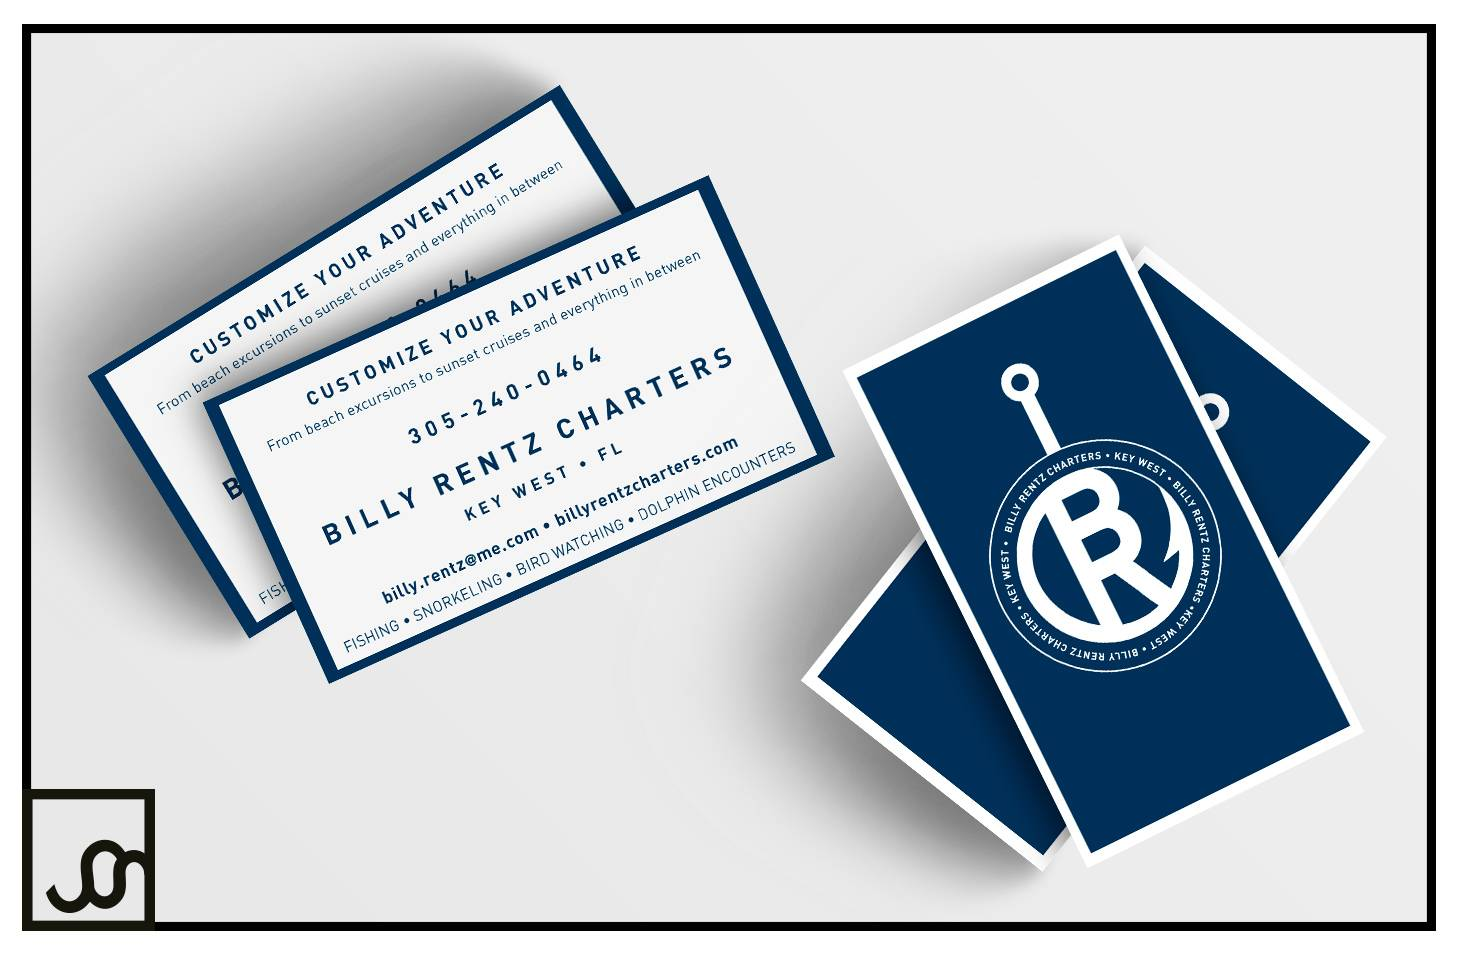 Billy Rentz Charters Business Cards